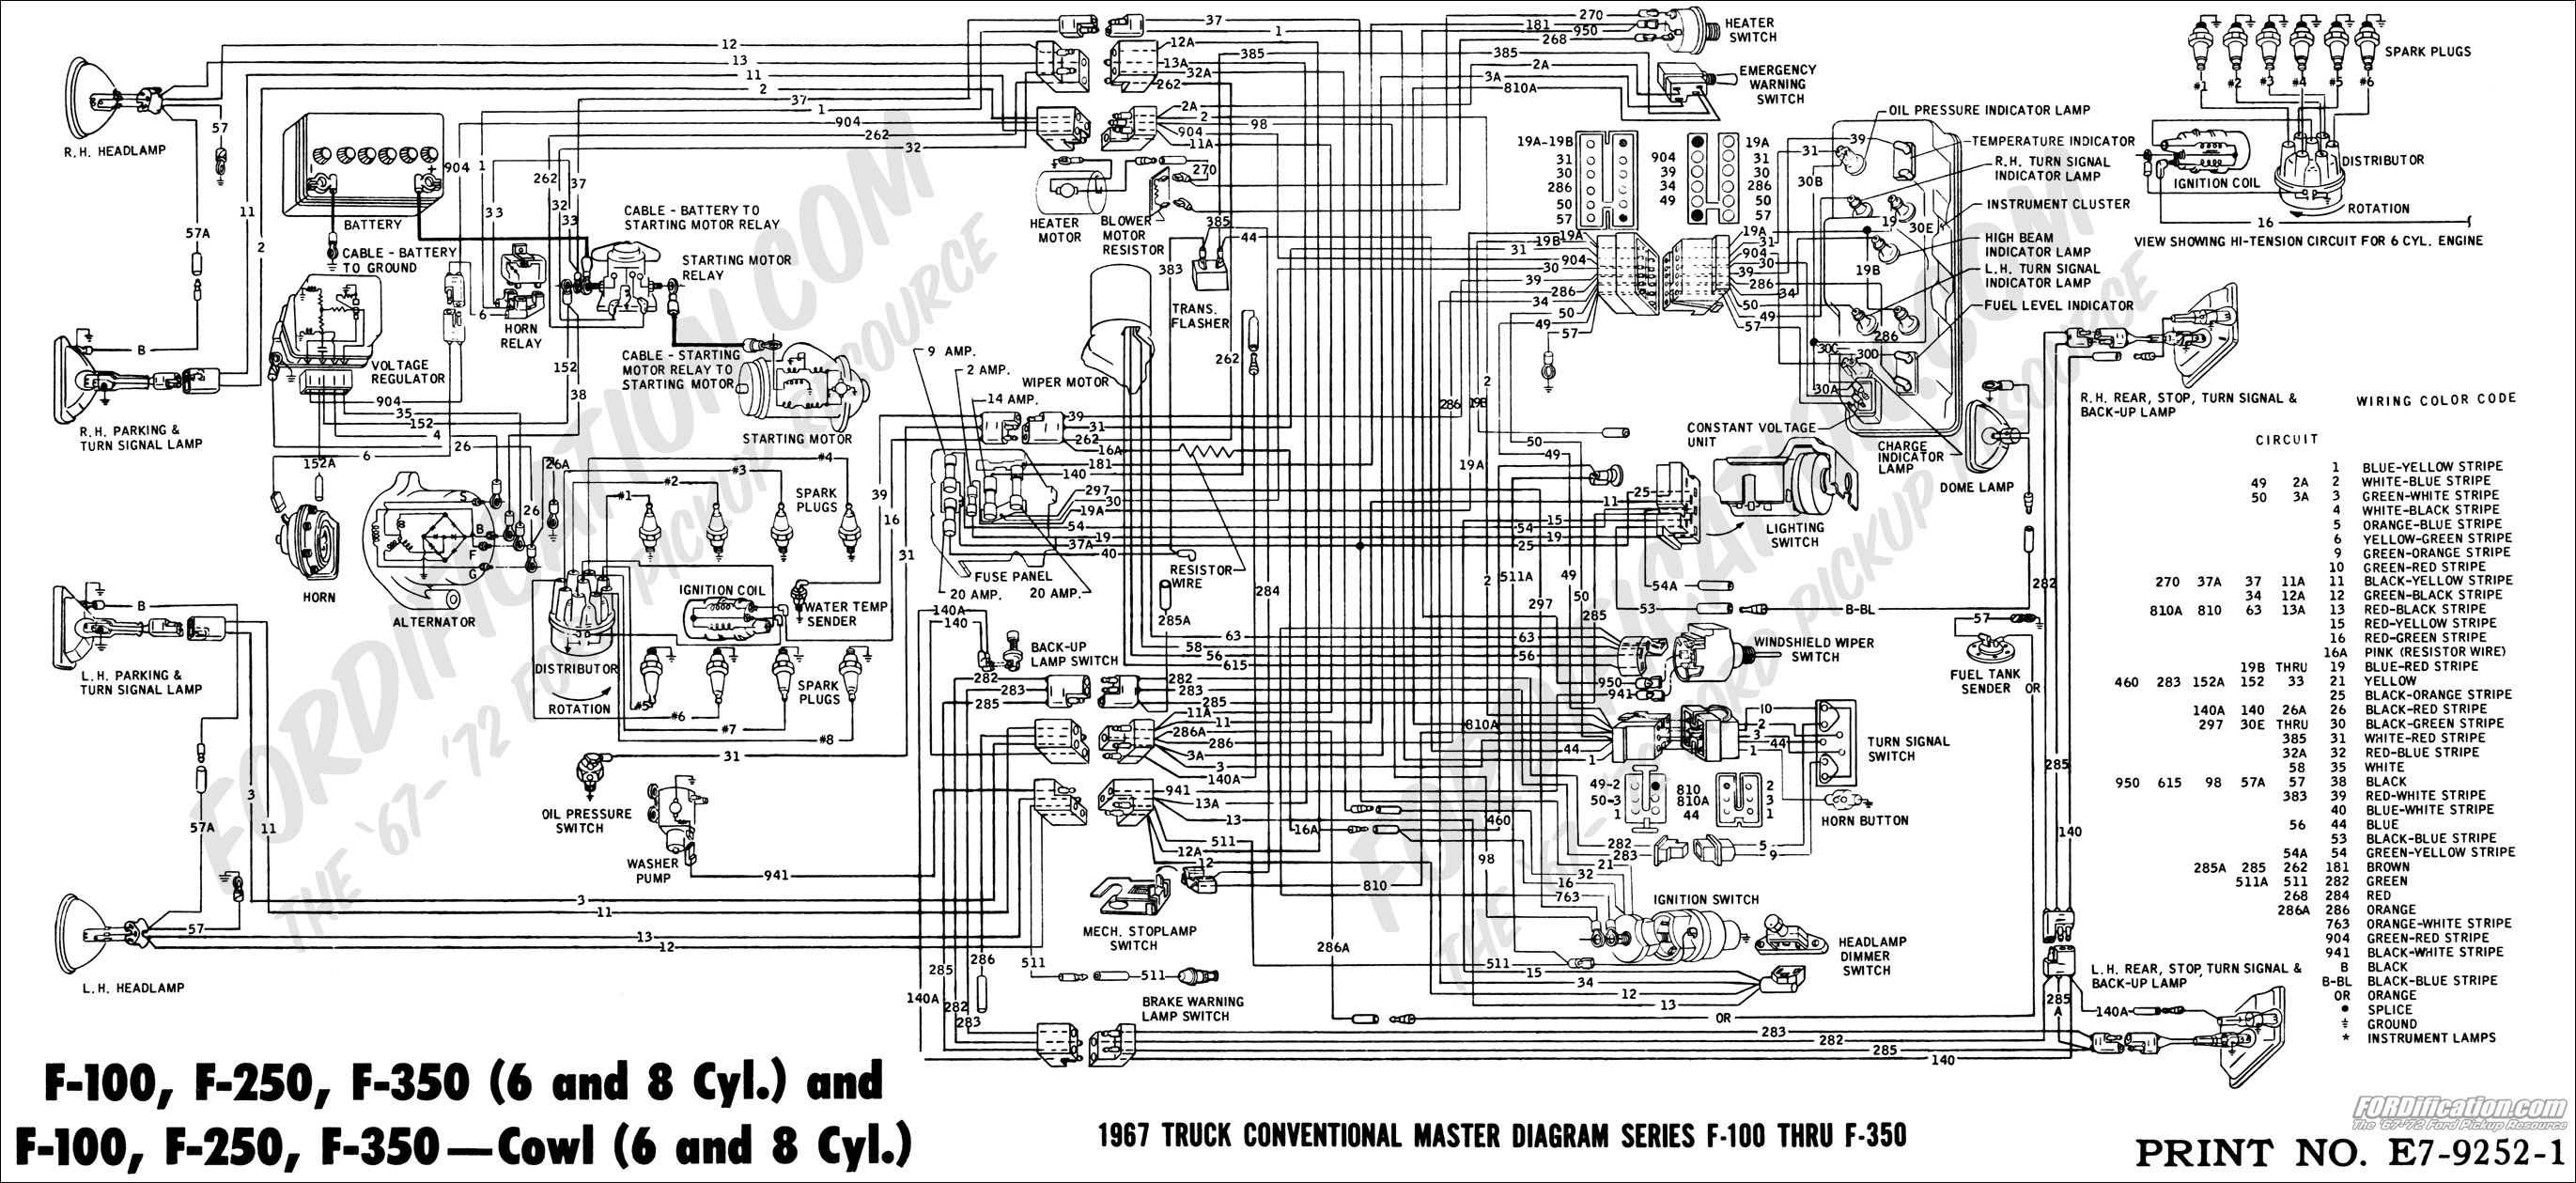 2001 F150 Fuse Box Info Wiring Library 1993 Ford F 150 Starter Diagram Detailed Schematics Rh Keyplusrubber Com 2002